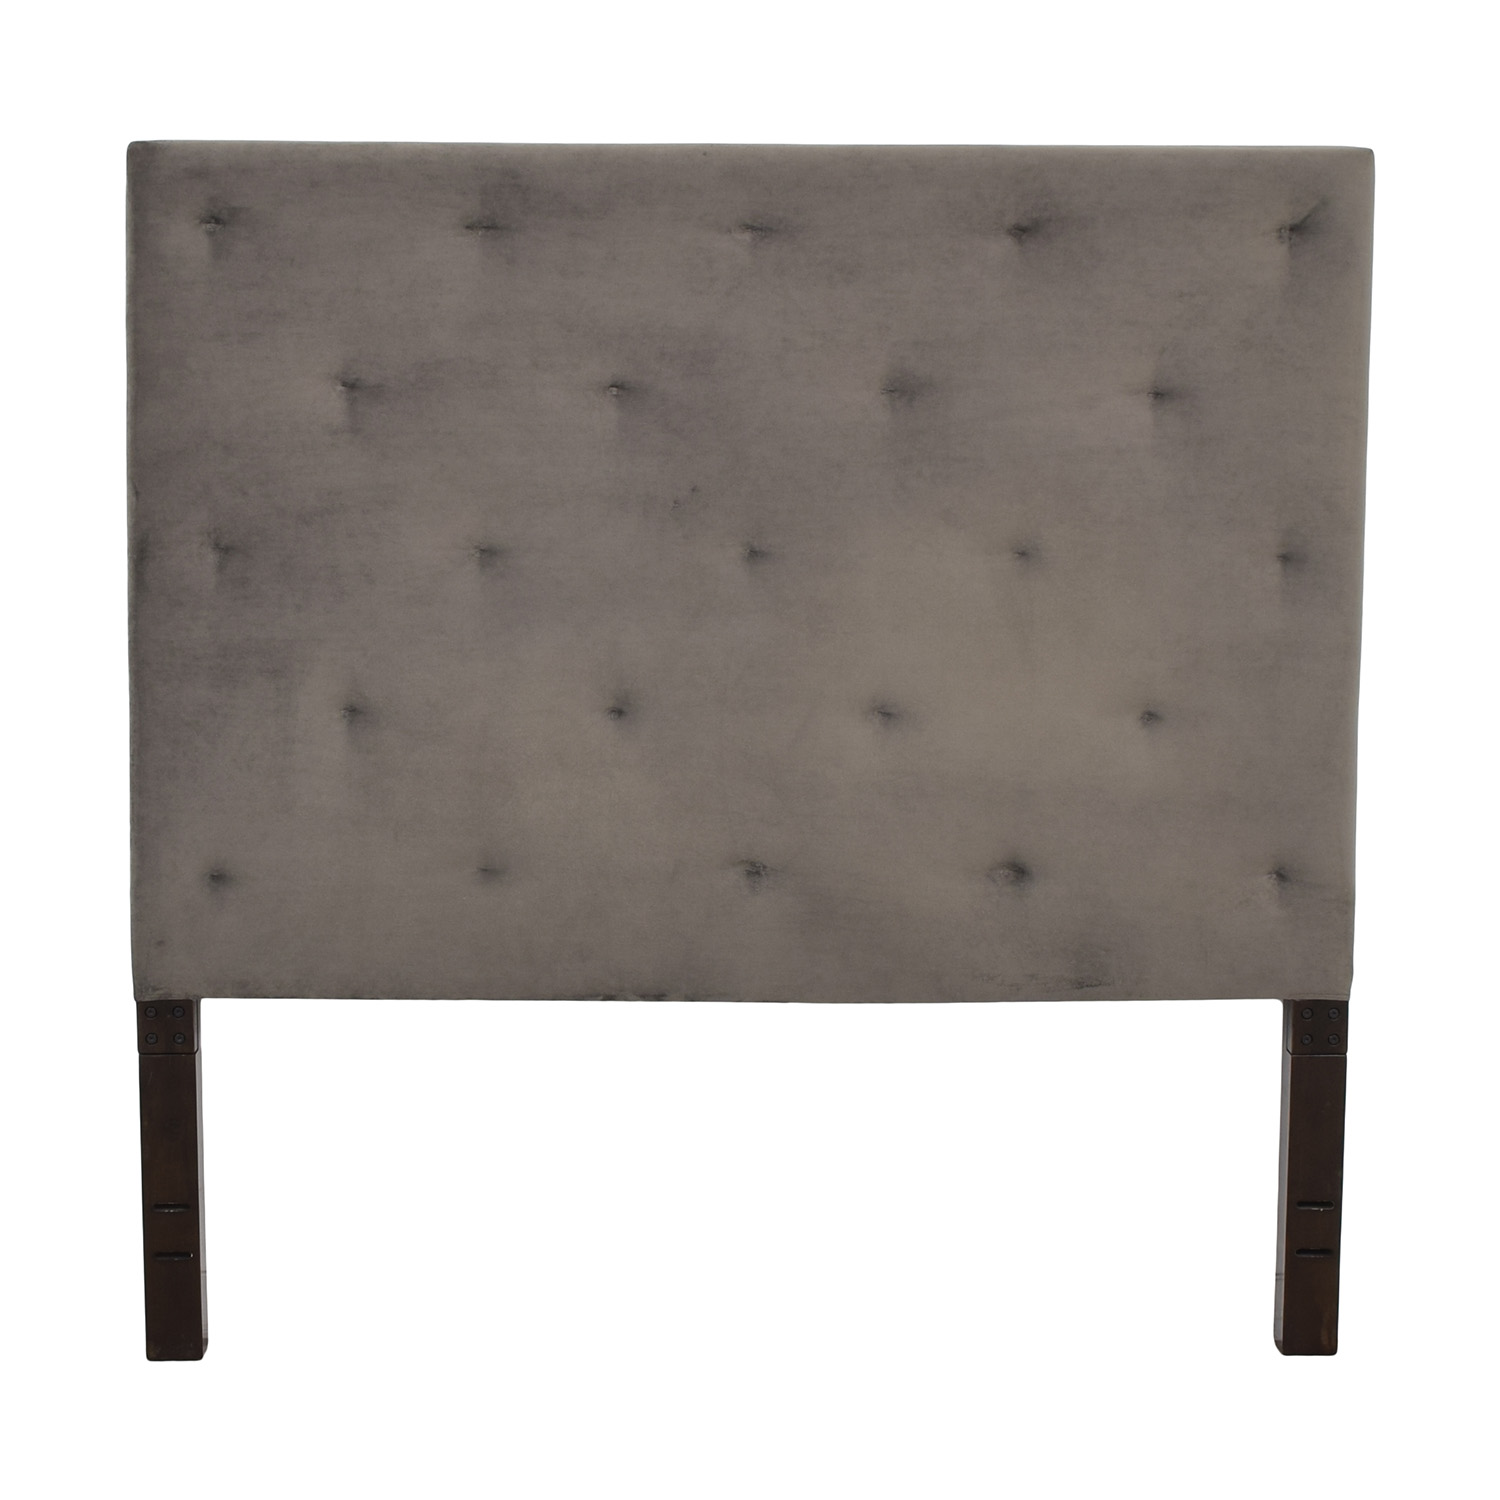 West Elm West Elm Upholstered Queen Headboard on sale